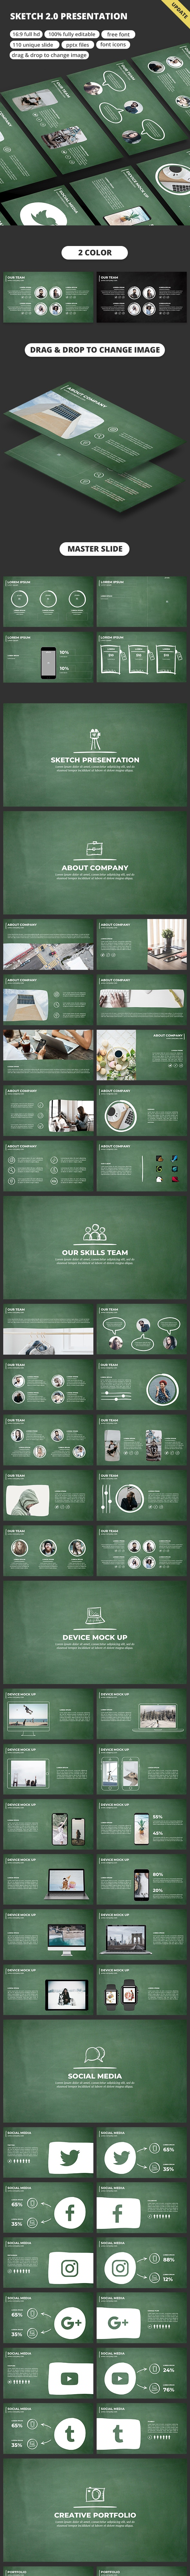 Sketch 2.0 - PowerPoint Template - Business PowerPoint Templates